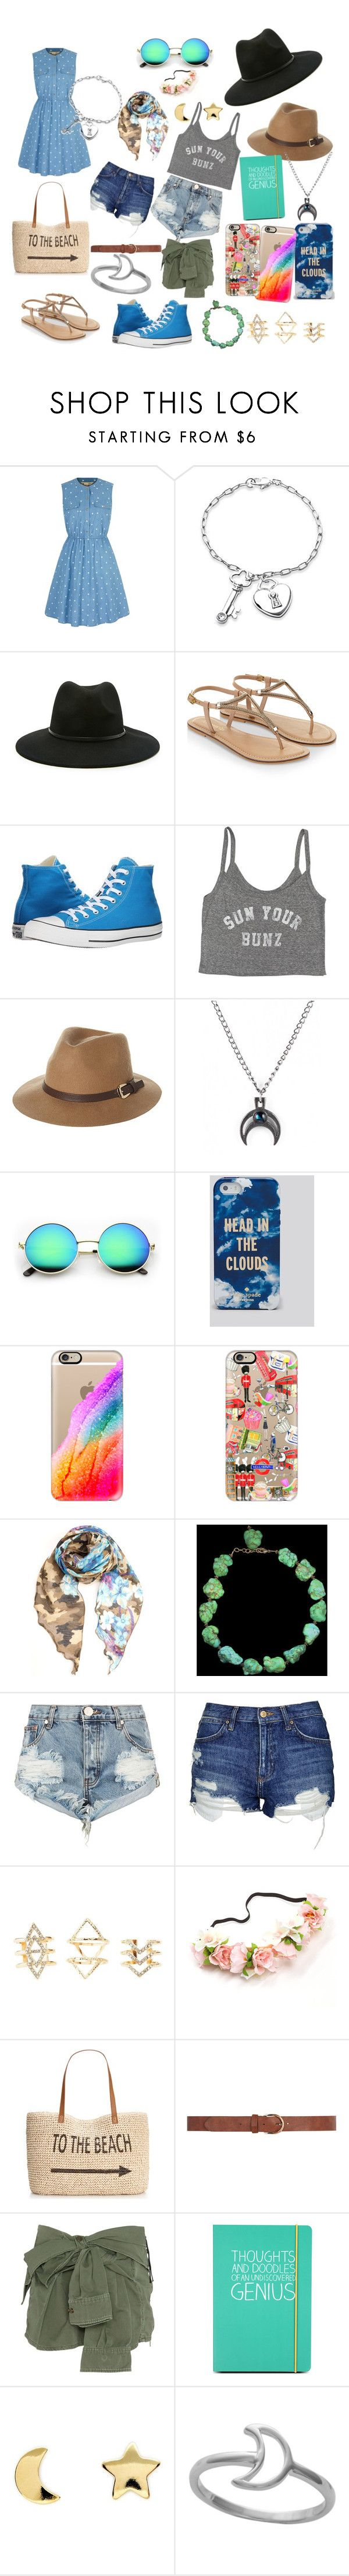 """Hippie Ascetic"" by thelittlefanthatcould ❤ liked on Polyvore featuring Yumi, Bling Jewelry, Forever 21, Monsoon, Converse, Billabong, Rusty, Kate Spade, Casetify and One Teaspoon"